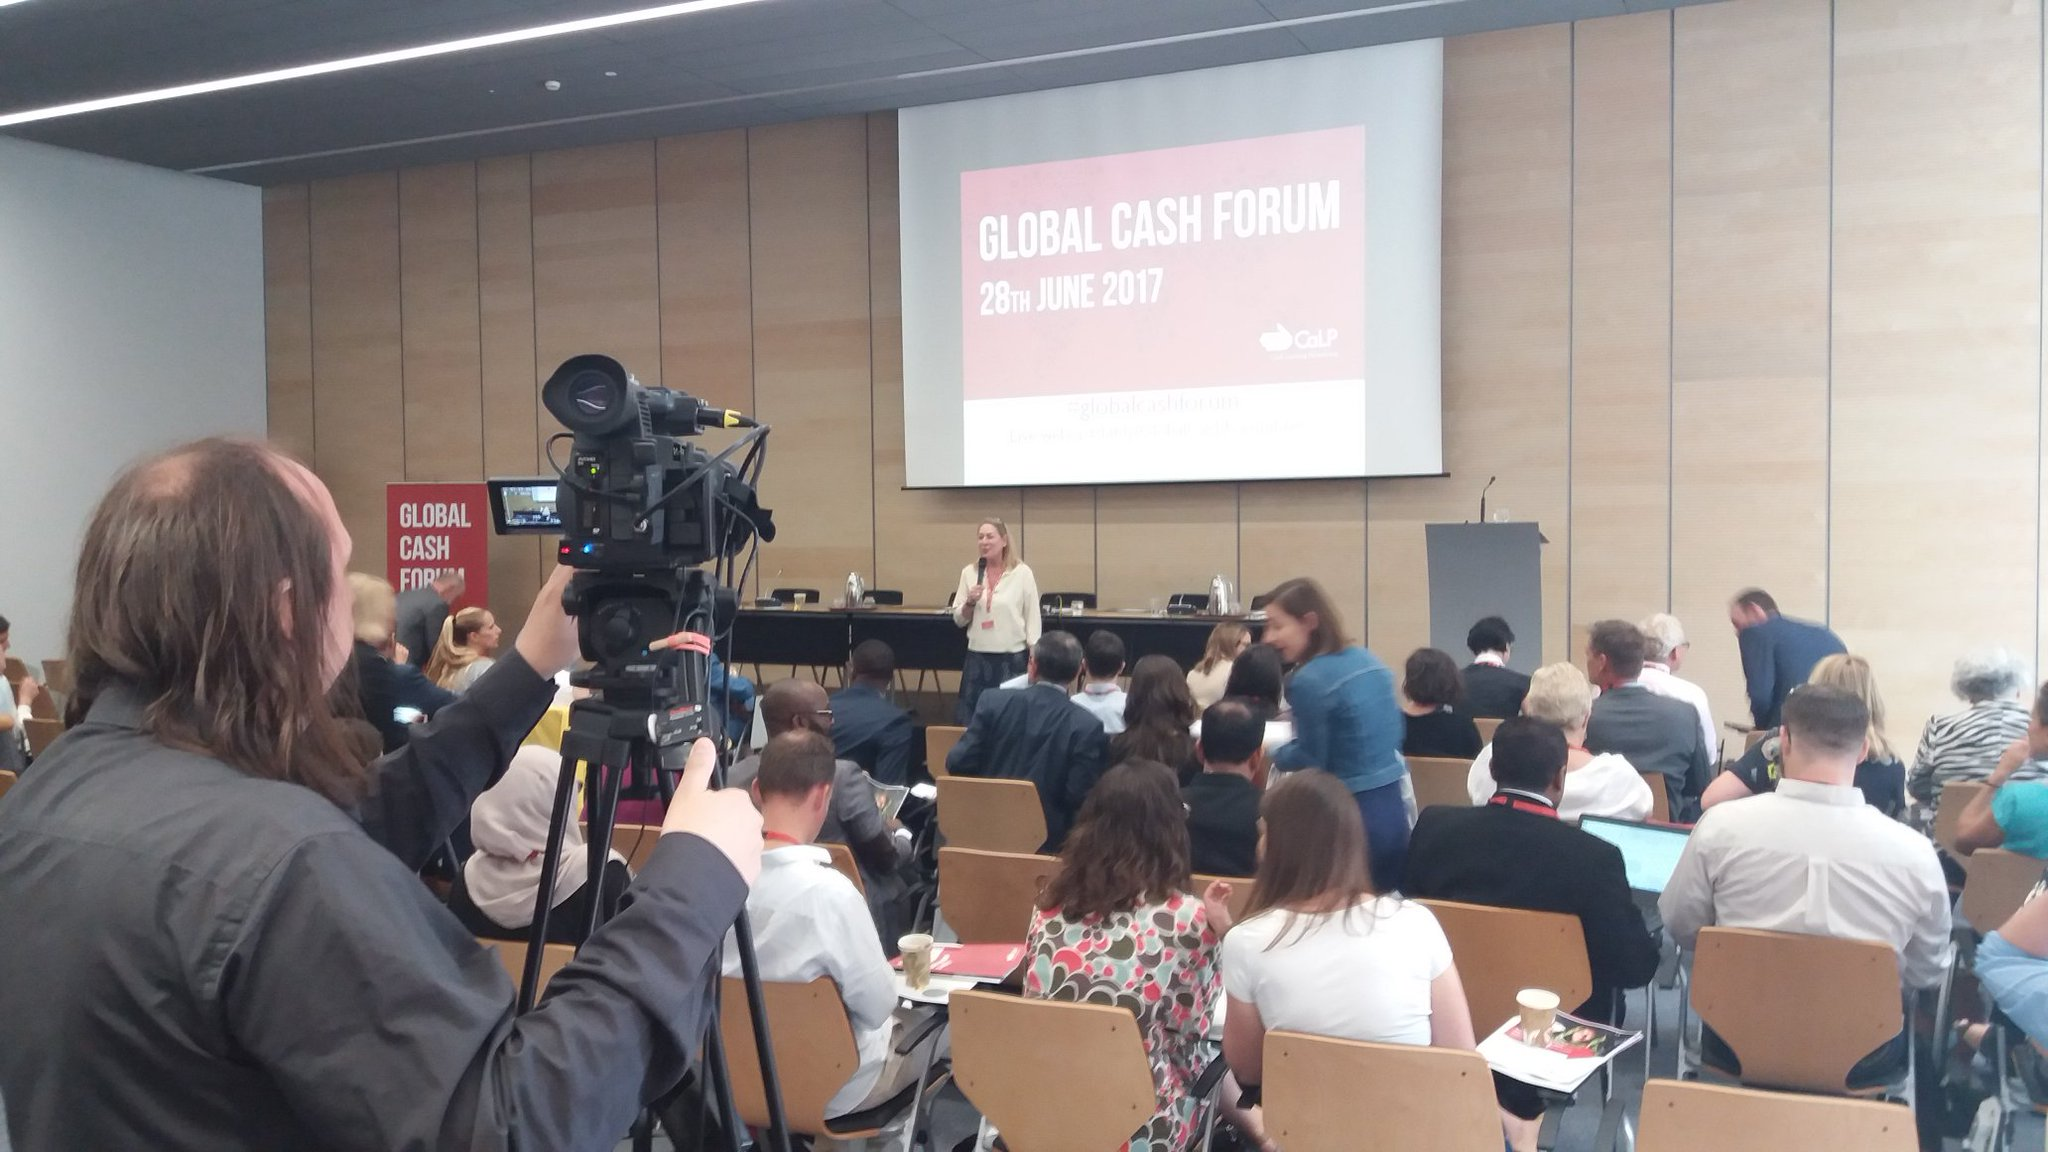 Behind the scenes at #globalcashforum with @cashlearning @AlexJacobs16 @NCissokho_CaLP and crew :) https://t.co/HVRzExwq7h